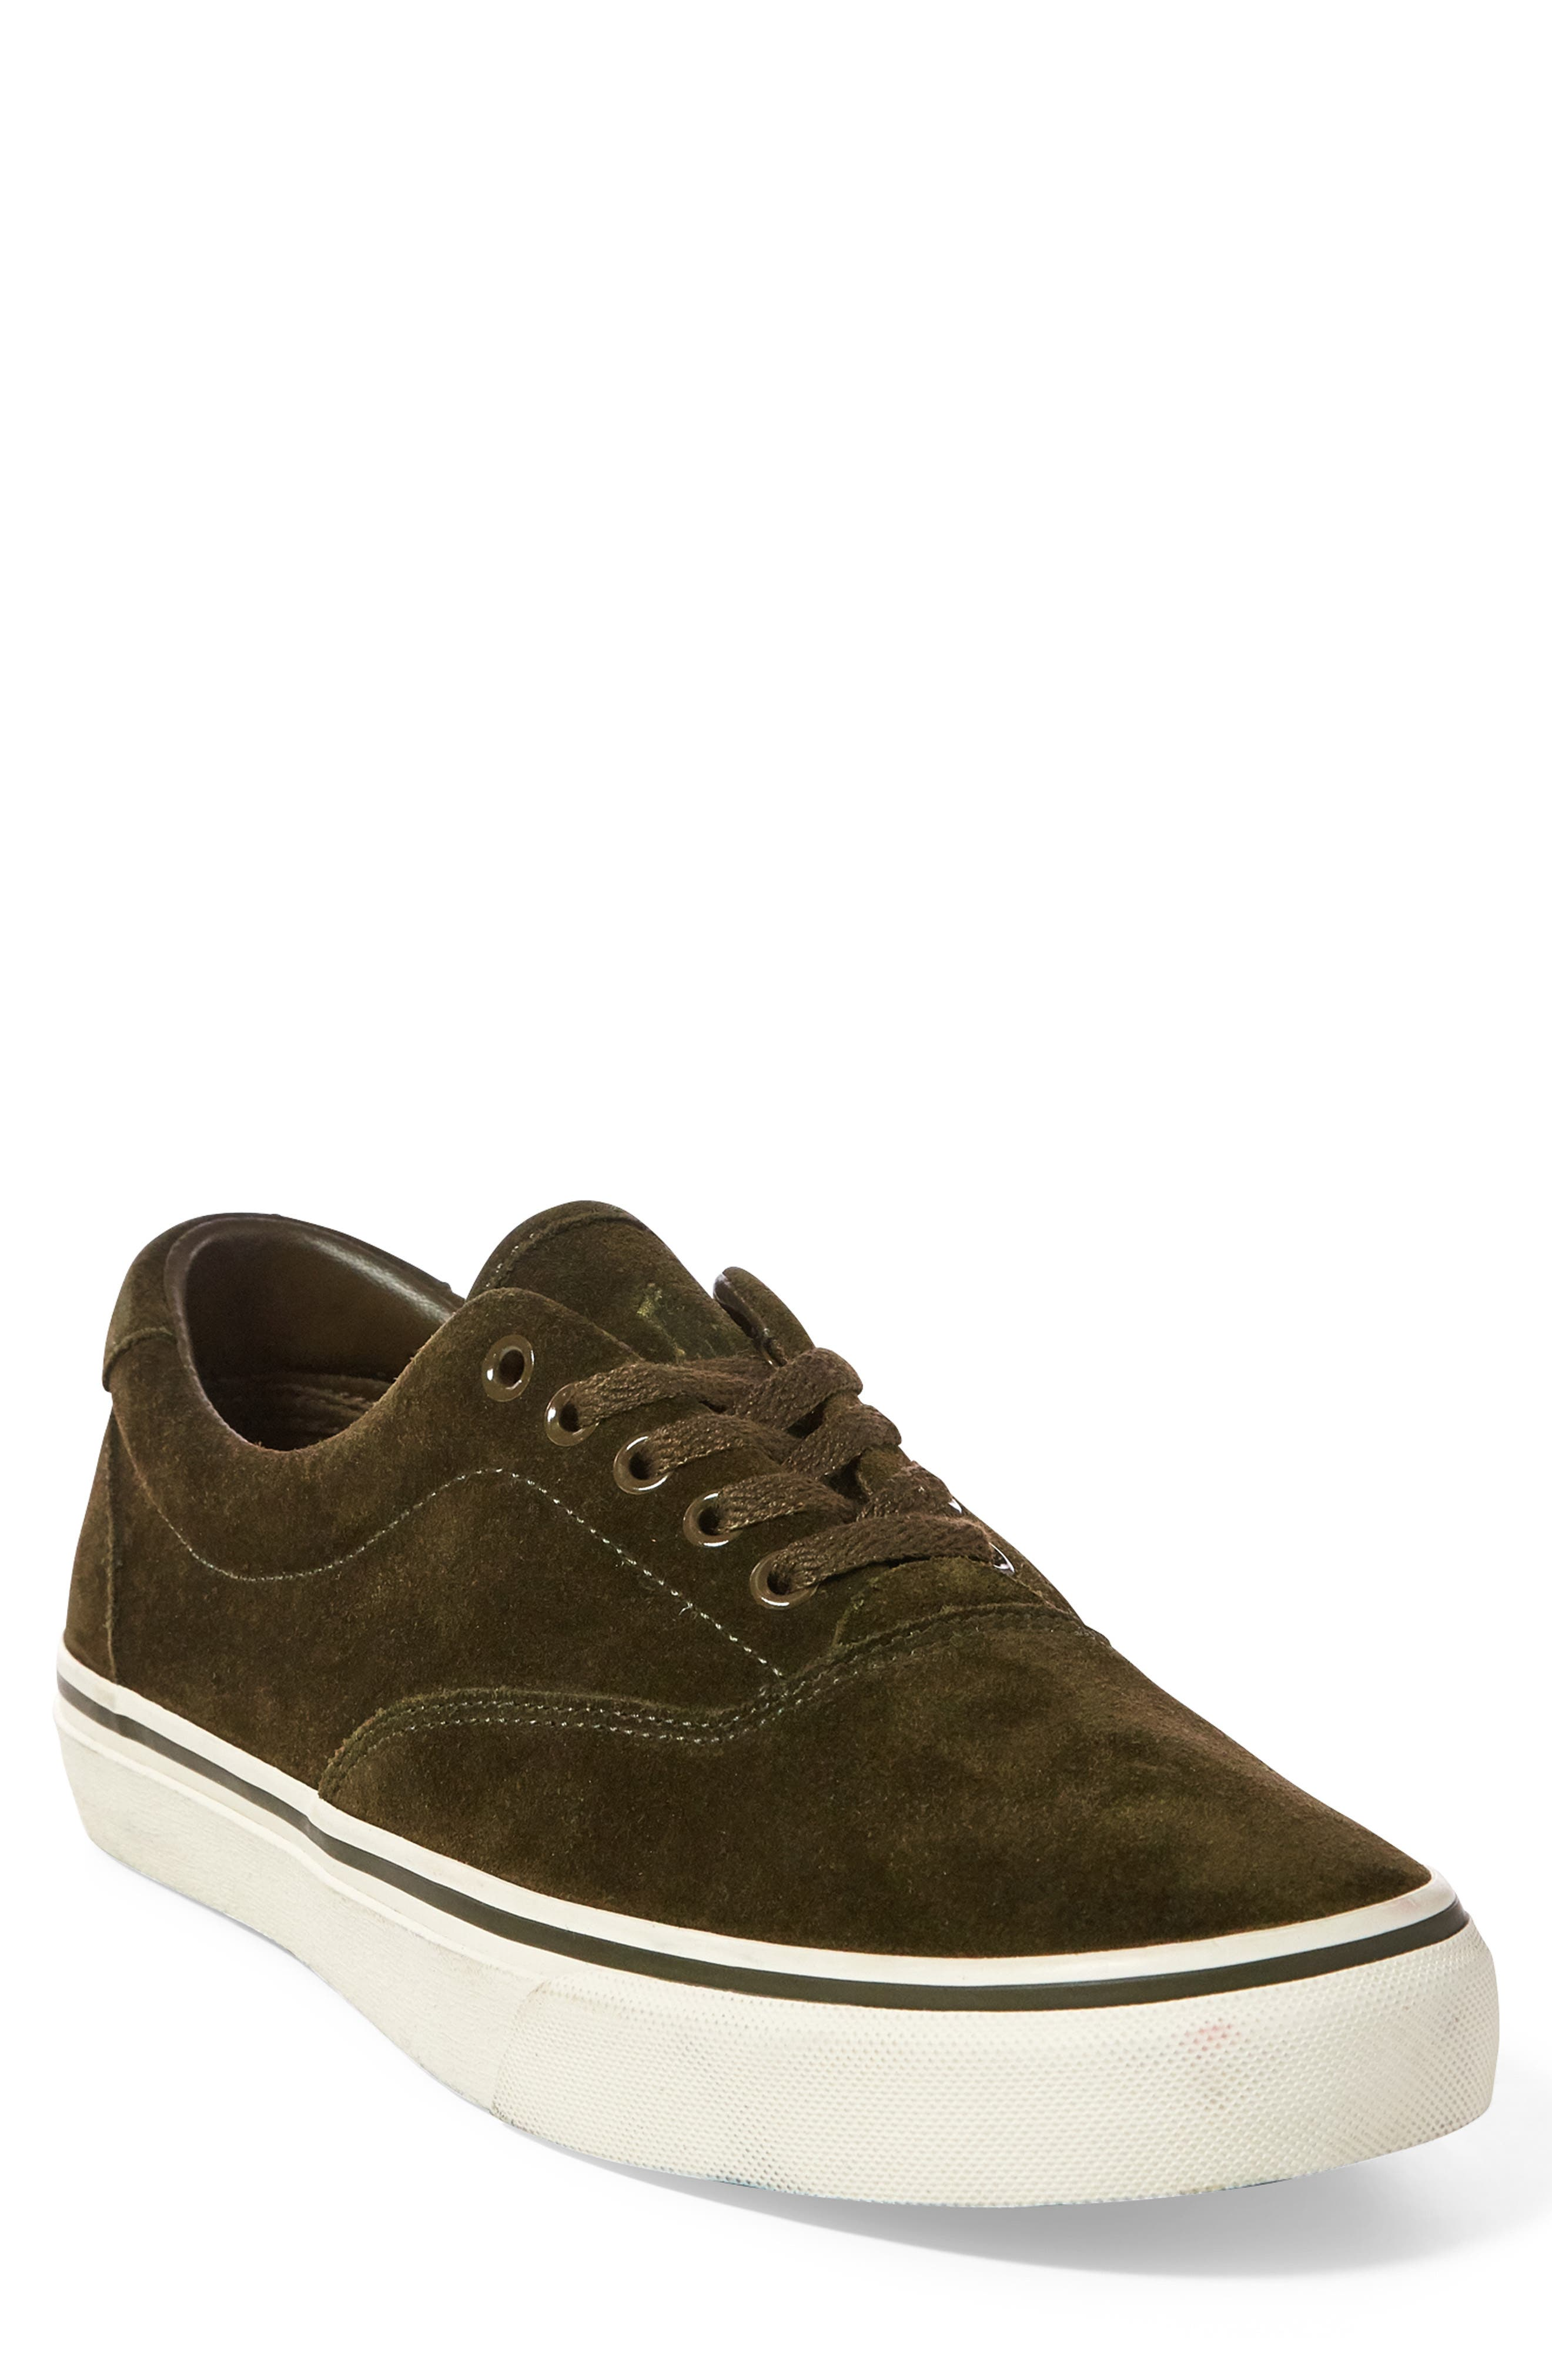 Thorton Sneaker,                         Main,                         color, DEEP OLIVE SUEDE